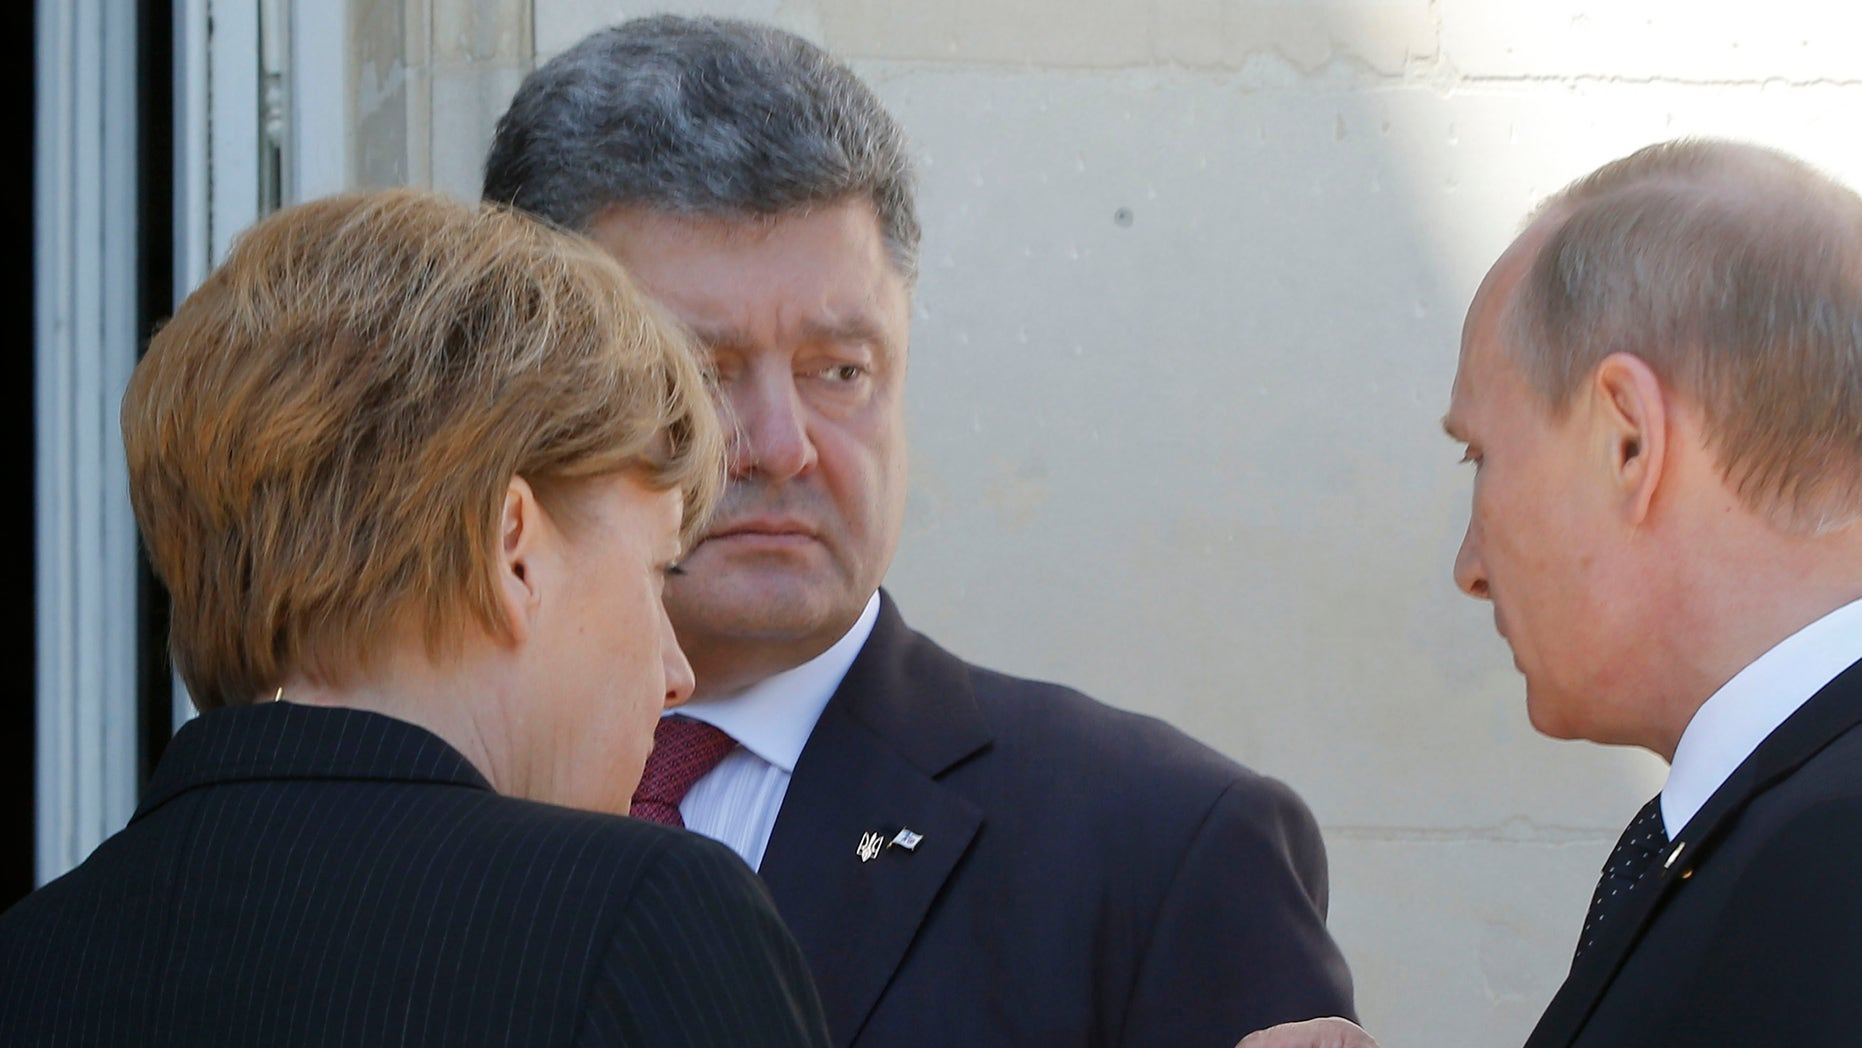 June 6, 2014 - German Chancellor Angela Merkel, left, Russian President Vladimir Putin, right, and Ukrainian president-elect Petro Poroshenko, center, talk after a group photo before a luncheon as they take part in the 70th anniversary of D-Day in Benouville in Normandy, France.